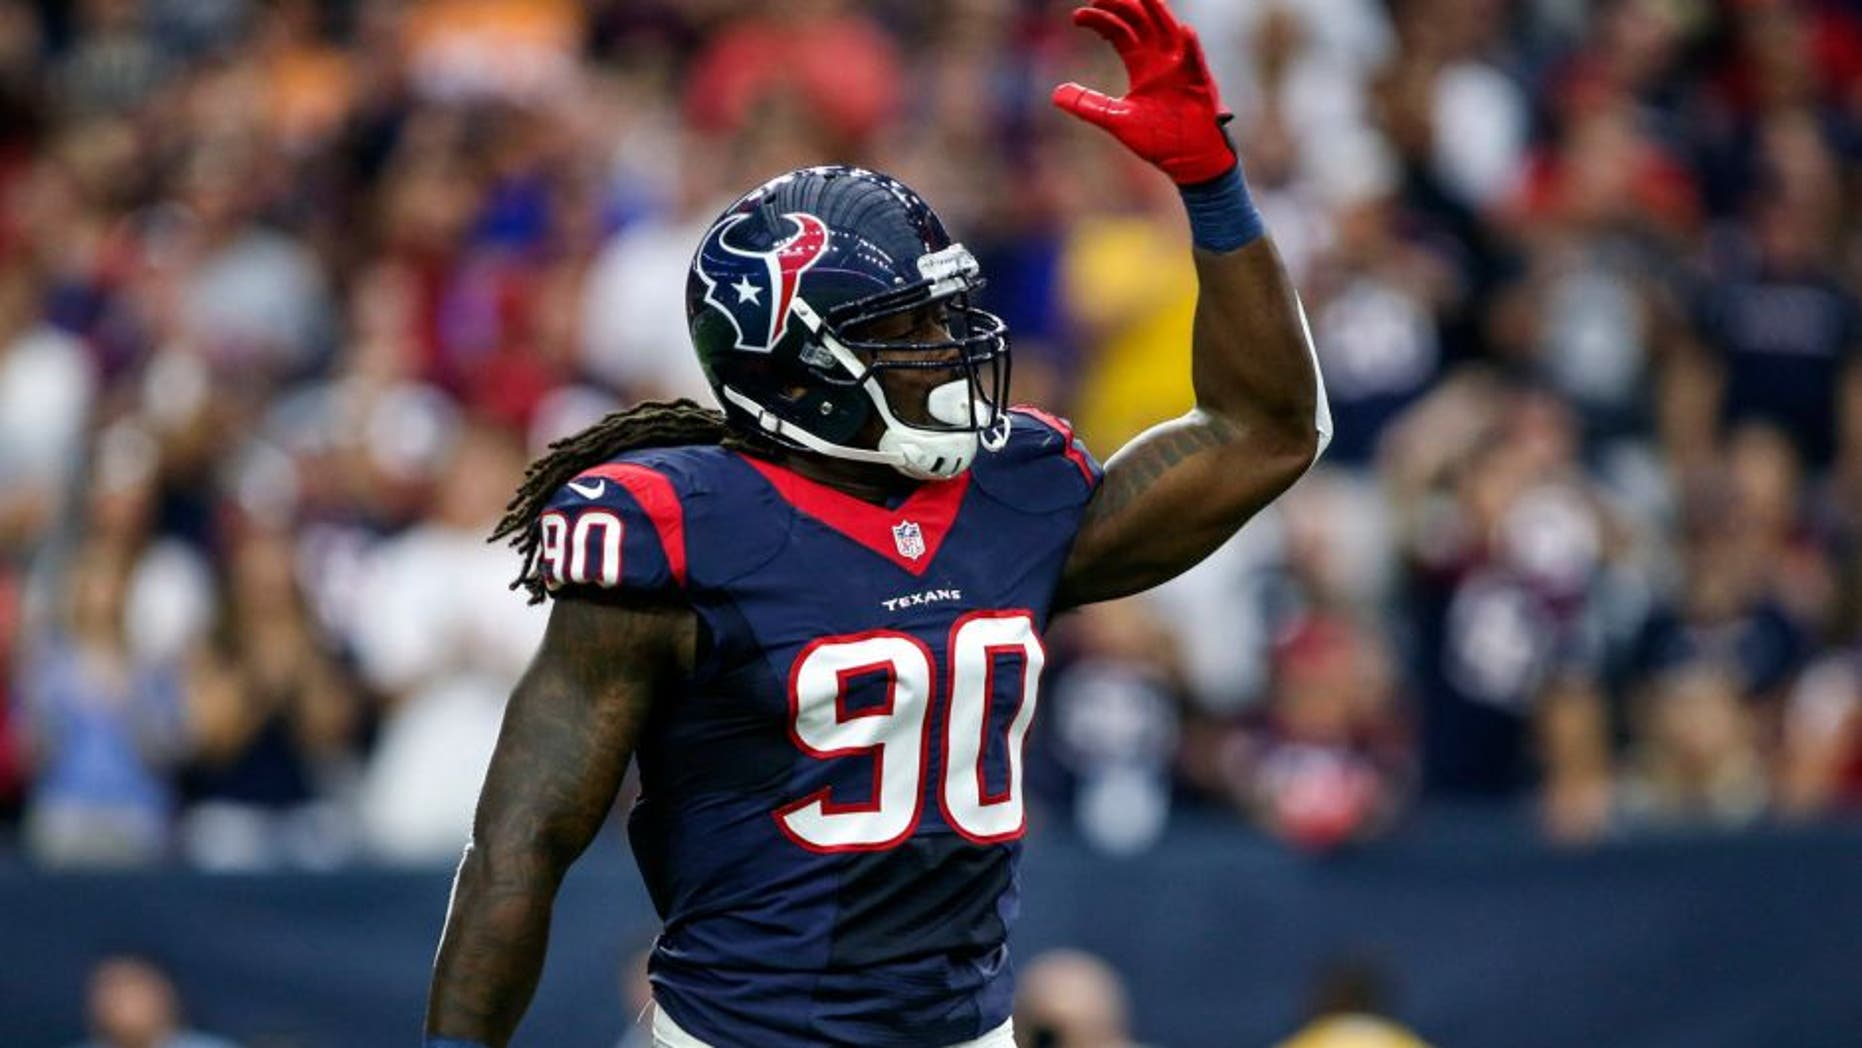 Sep 27, 2015; Houston, TX, USA; Houston Texans outside linebacker Jadeveon Clowney (90) reacts after a play during the first quarter against the Tampa Bay Buccaneers at NRG Stadium. Mandatory Credit: Troy Taormina-USA TODAY Sports